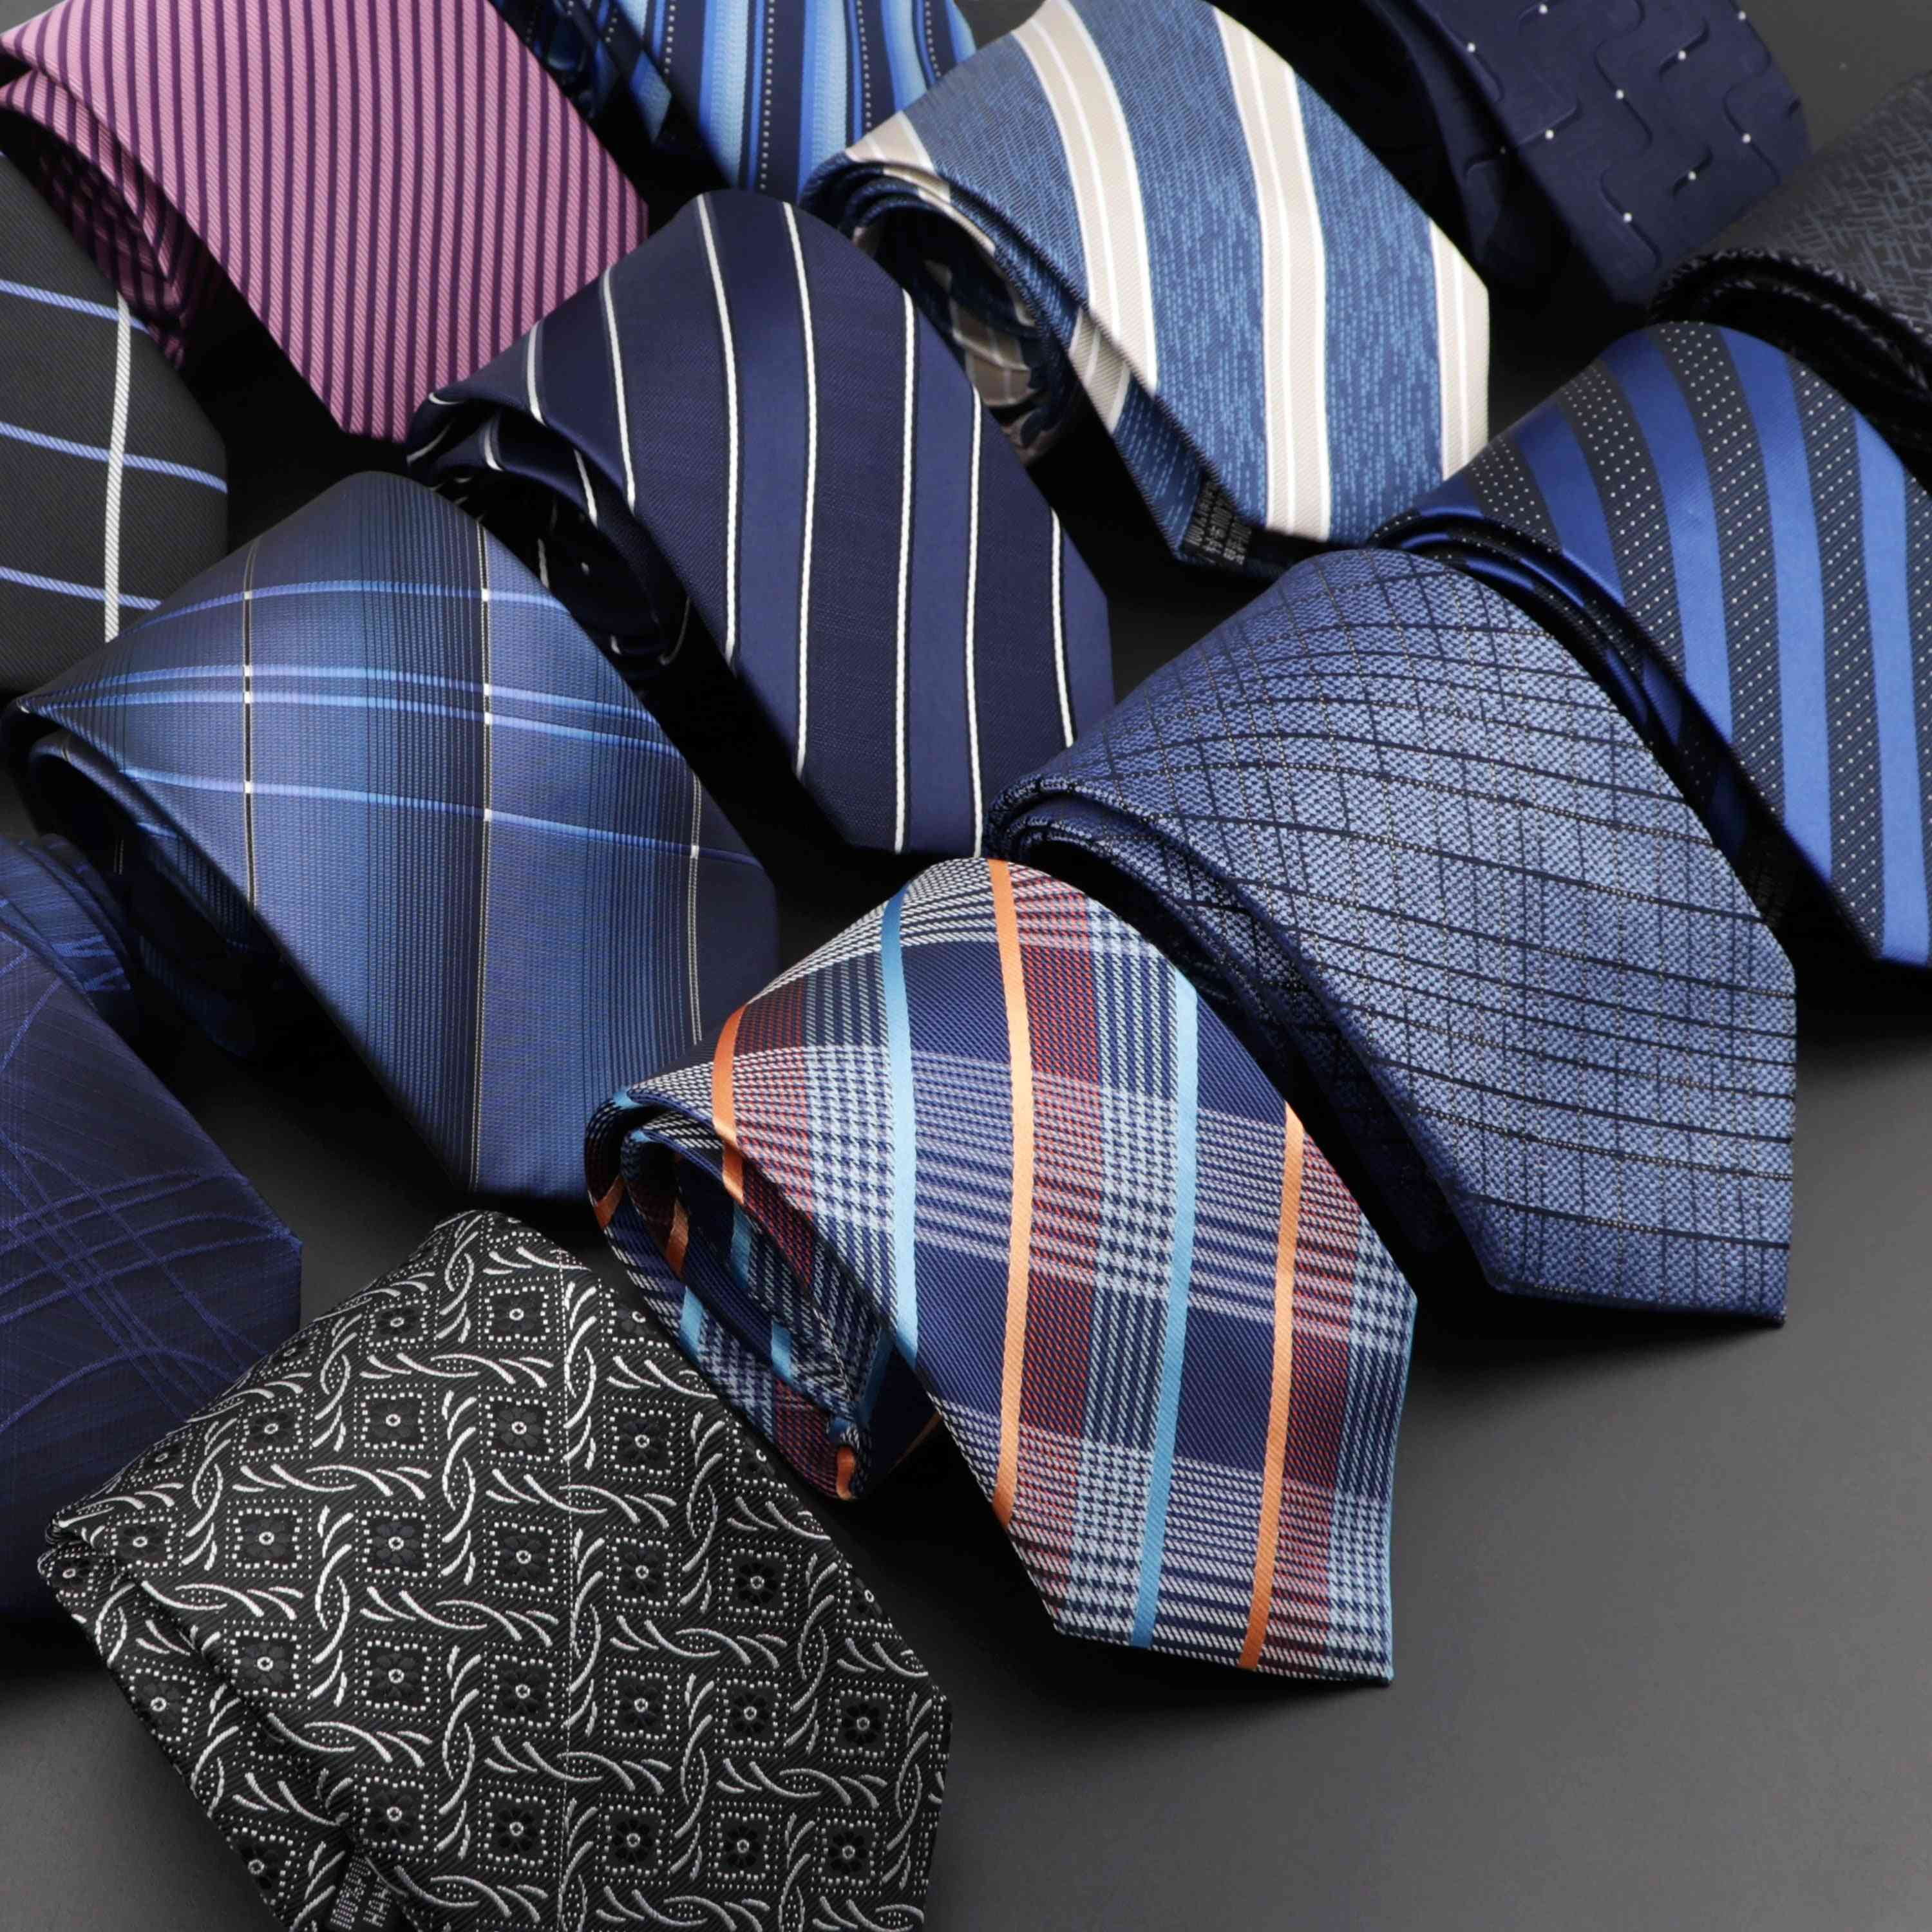 Classic Solid/stripe/floral Pattern Necktie For Wedding/party